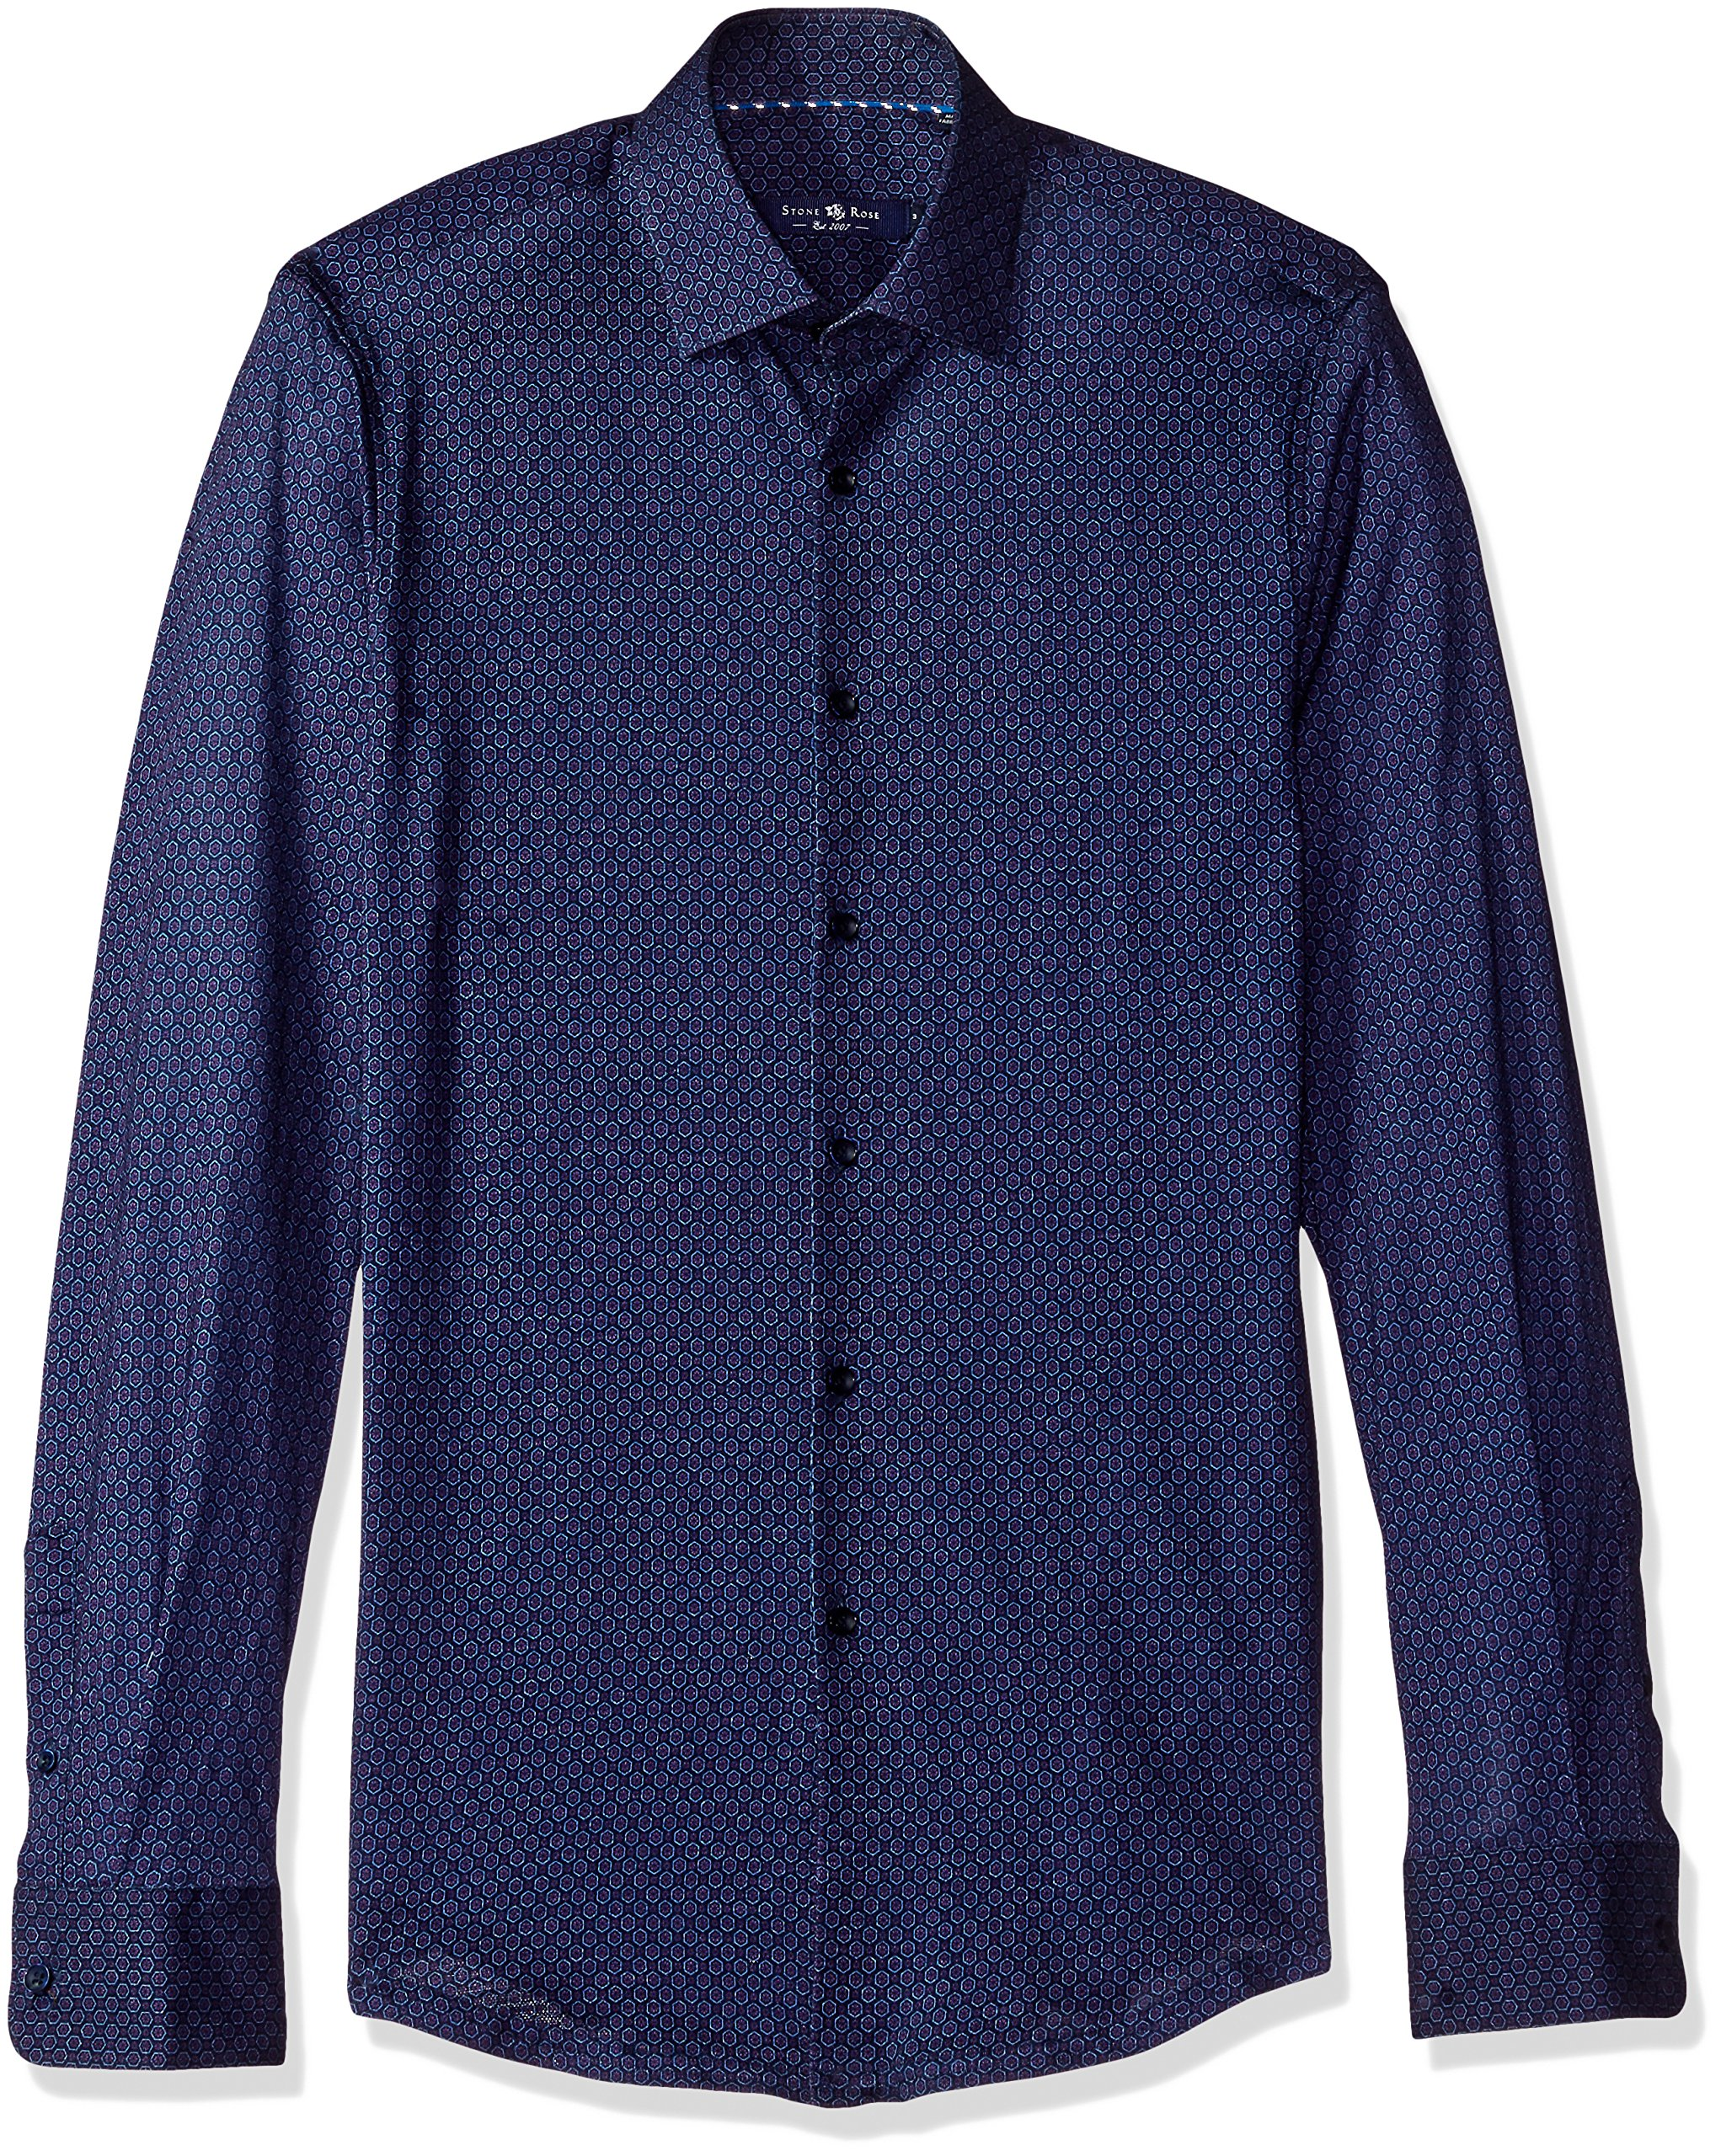 Stone Rose Men's Honeycomb Geo Knit Print Button Down Shirt, Navy, X-Large